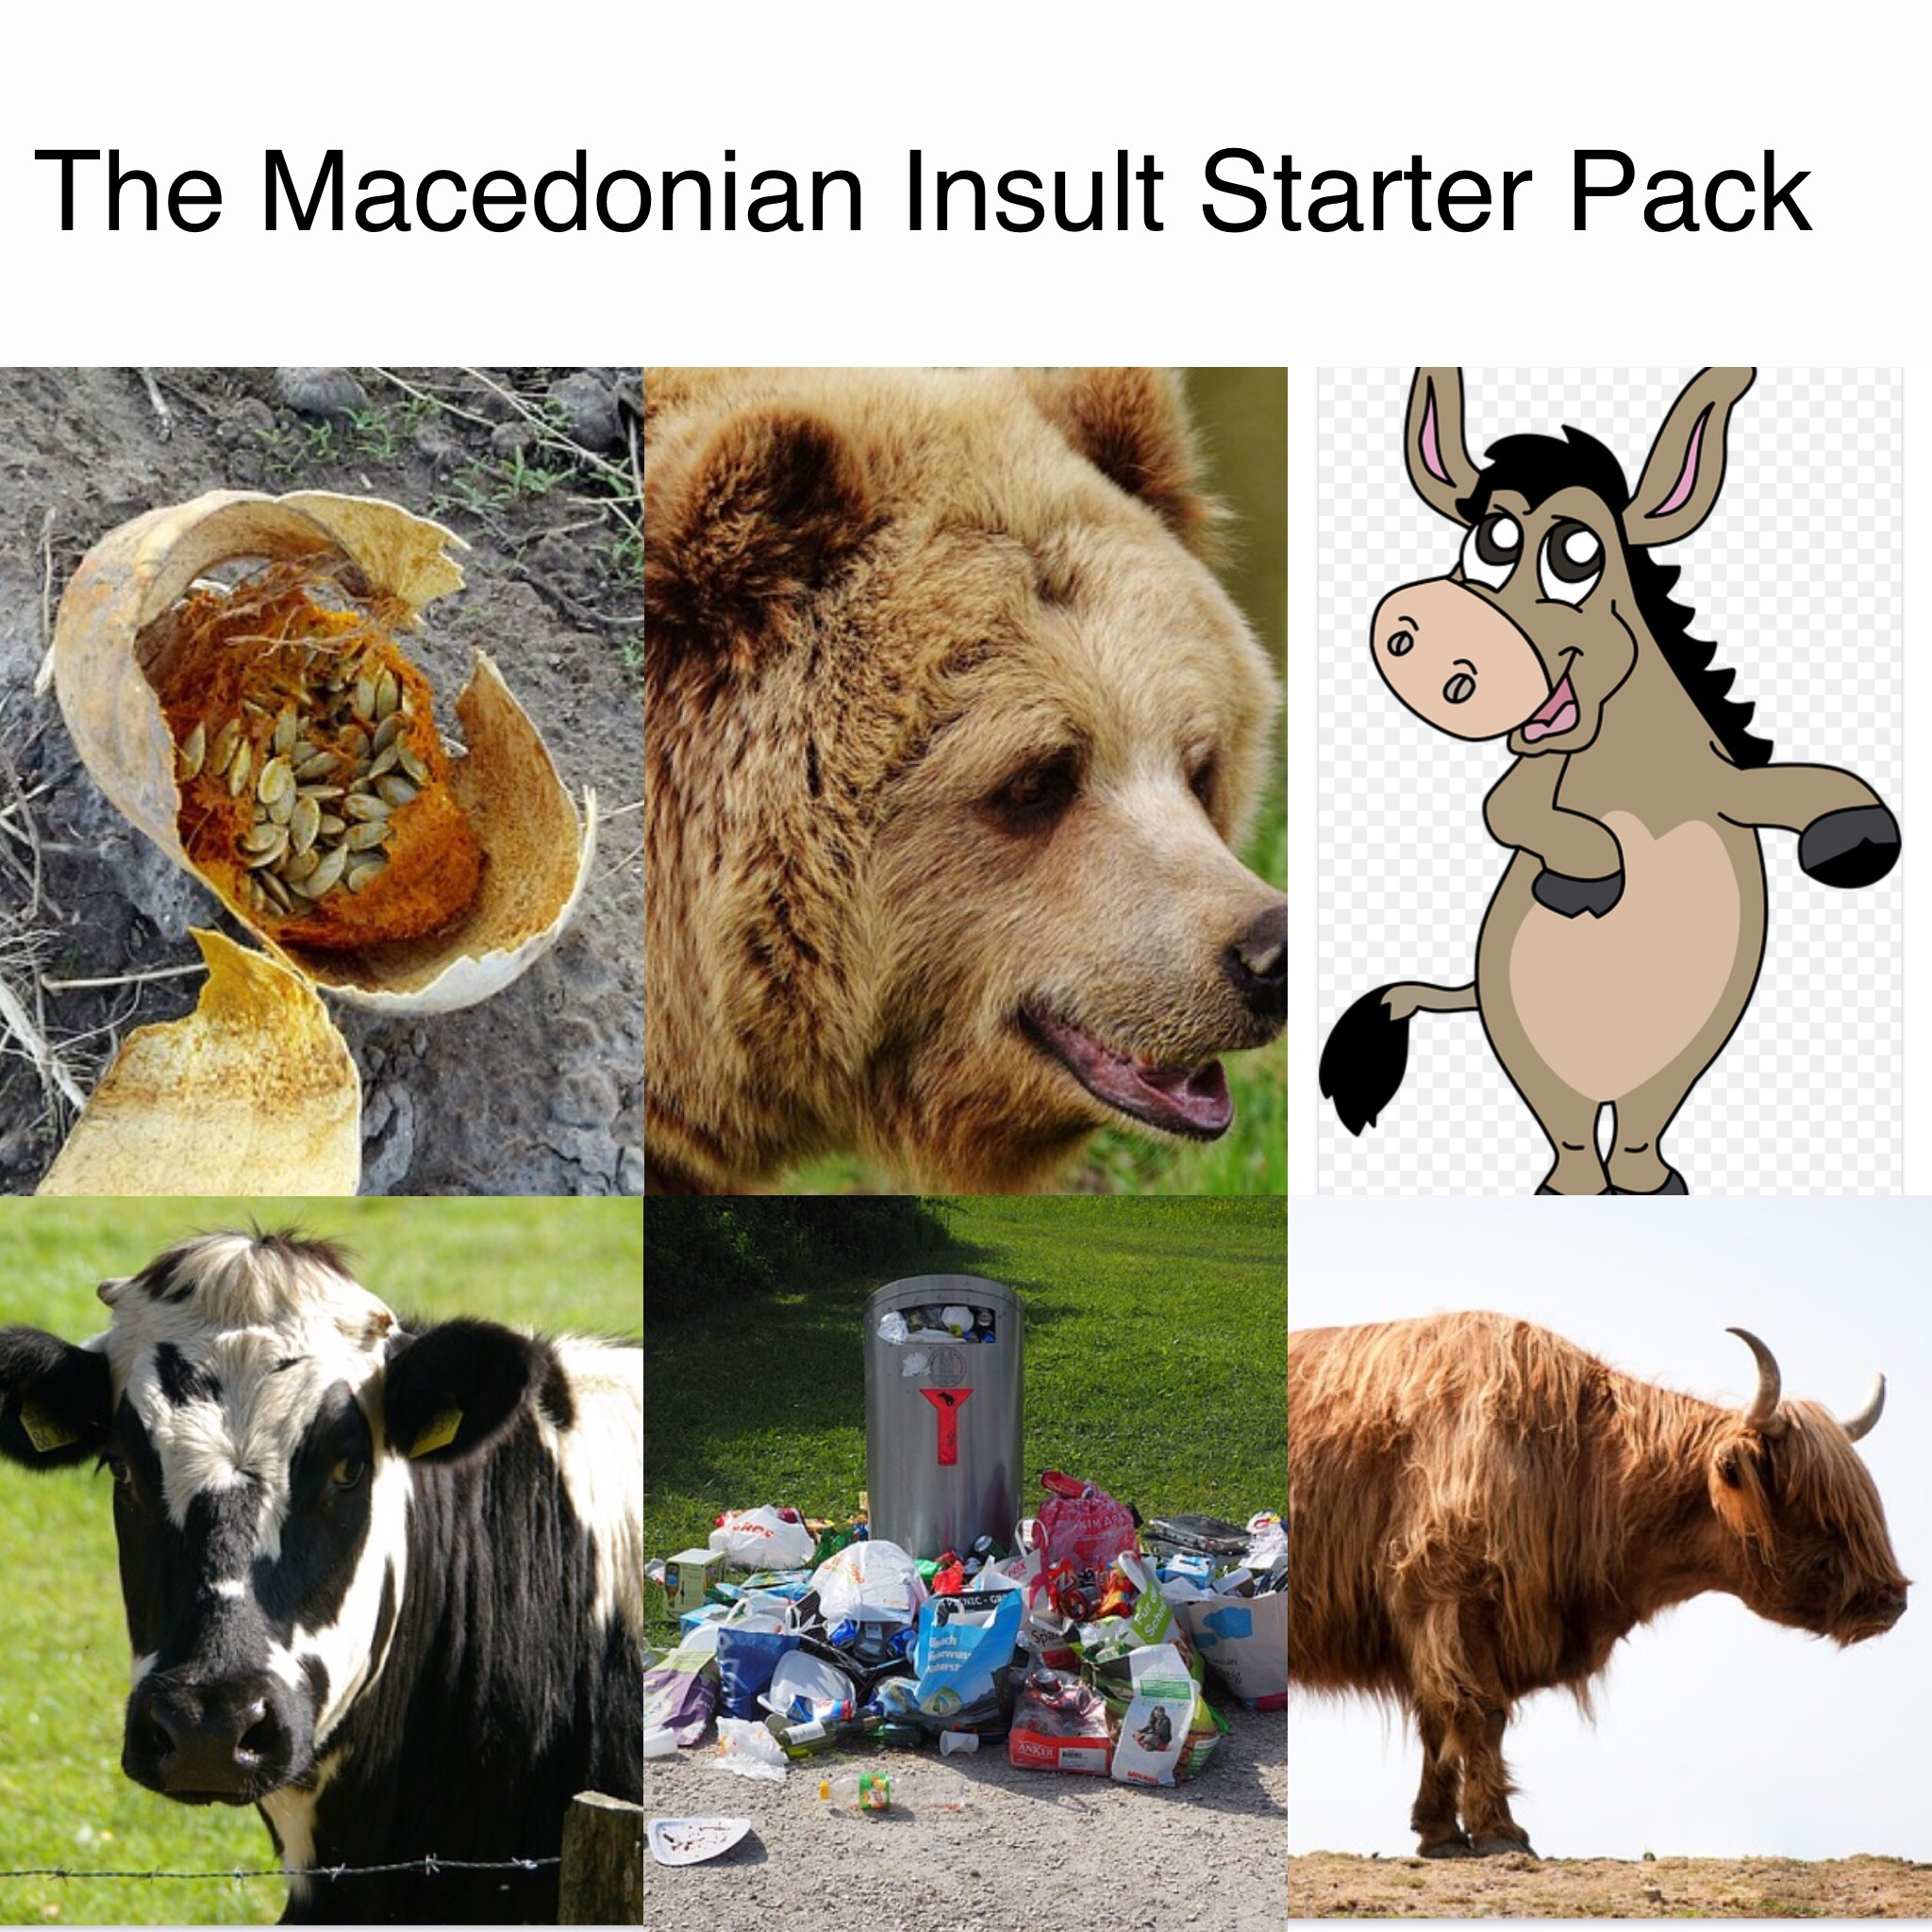 Macedonian Memes – The Macedonian Insult Starter Pack